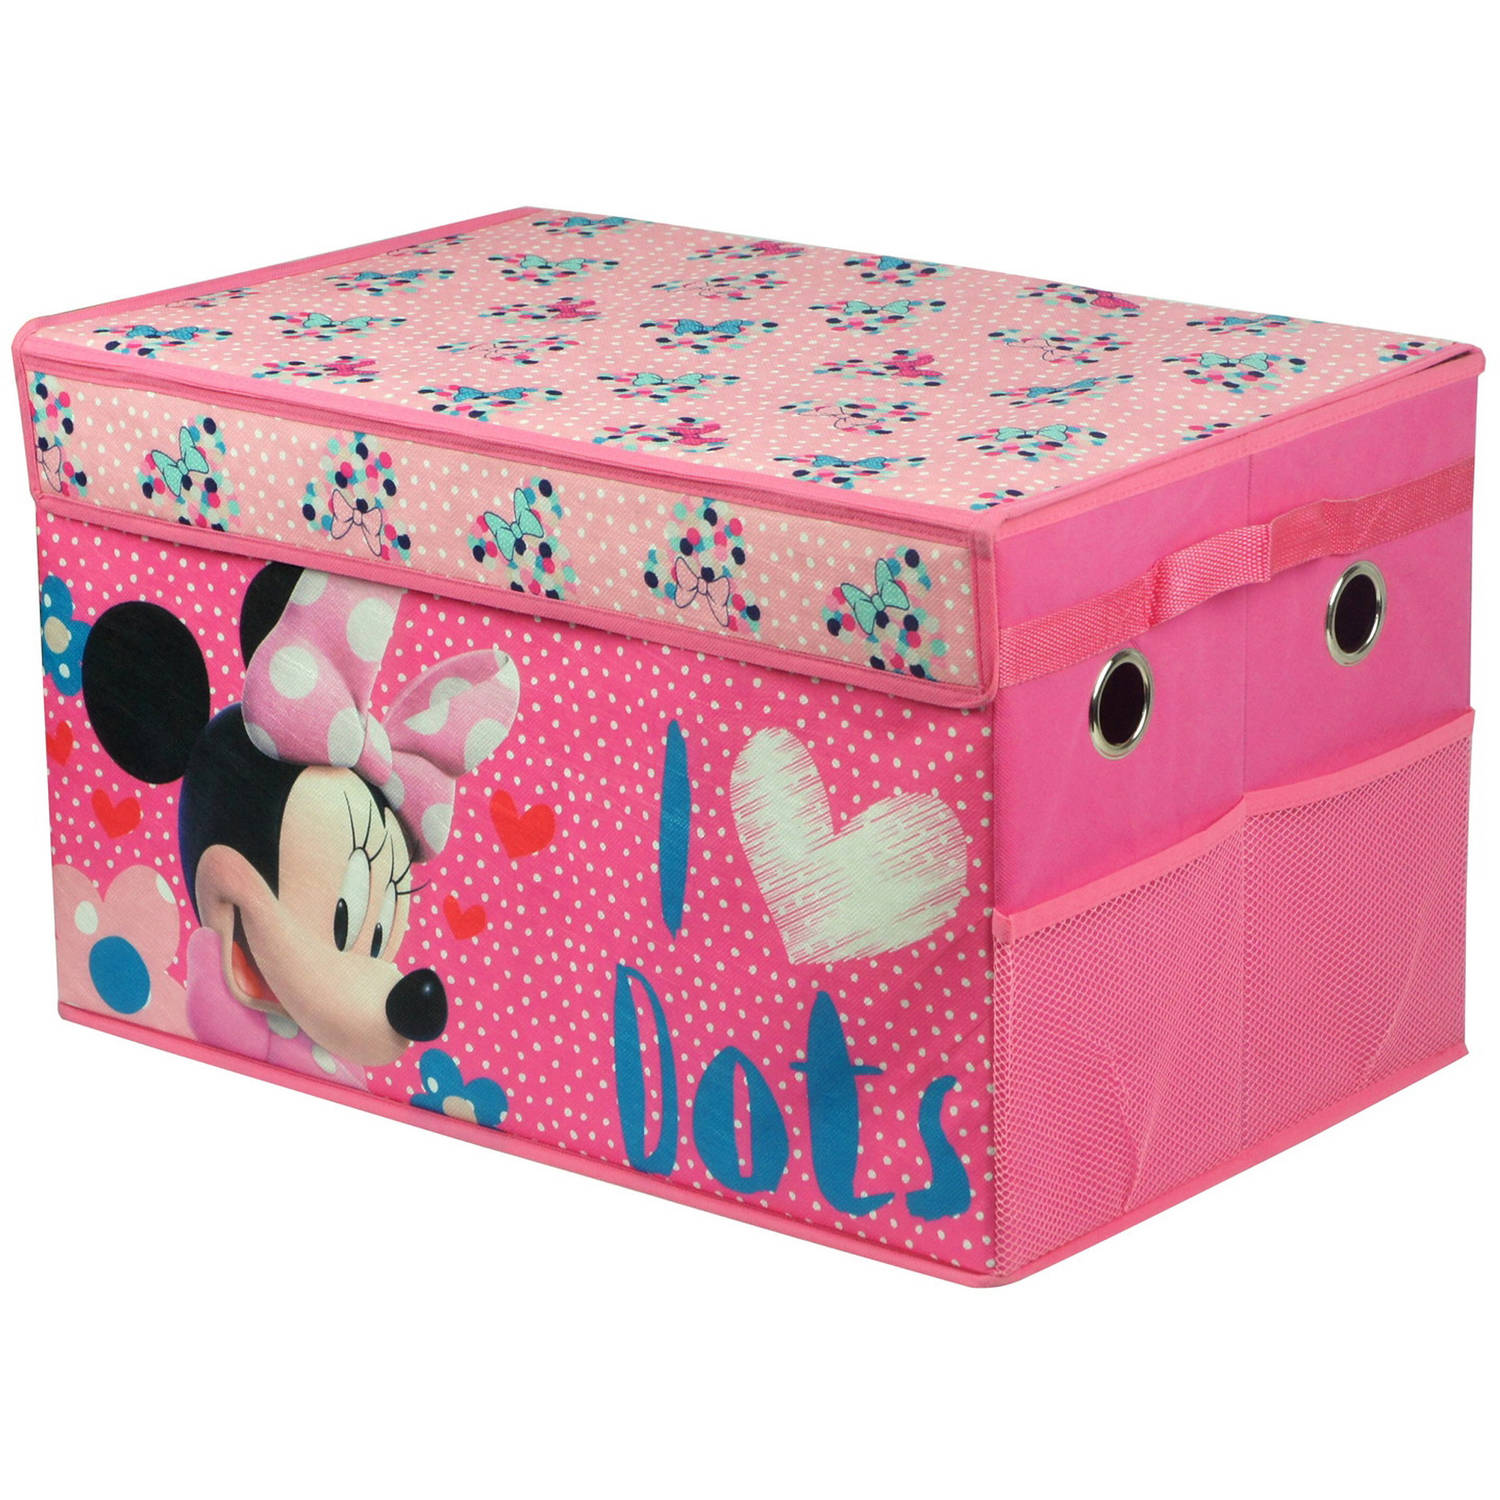 Minnie Mouse Collapsible Toy Storage Trunk